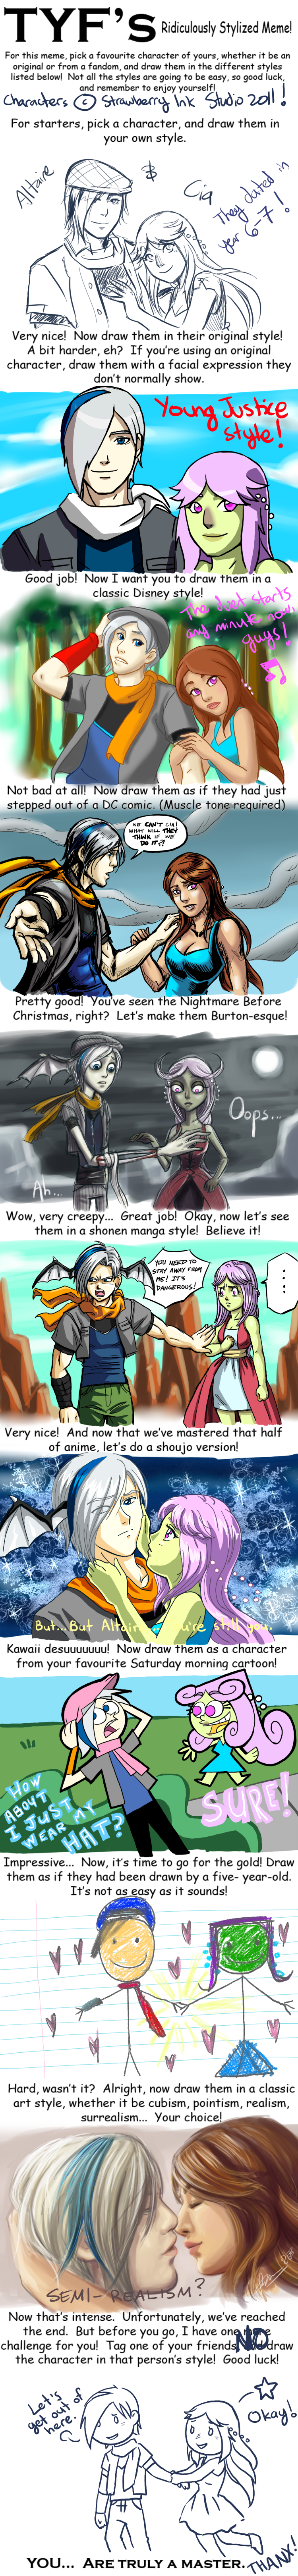 style_meme___alt_and_cia_by_meibatsu-d423131.png